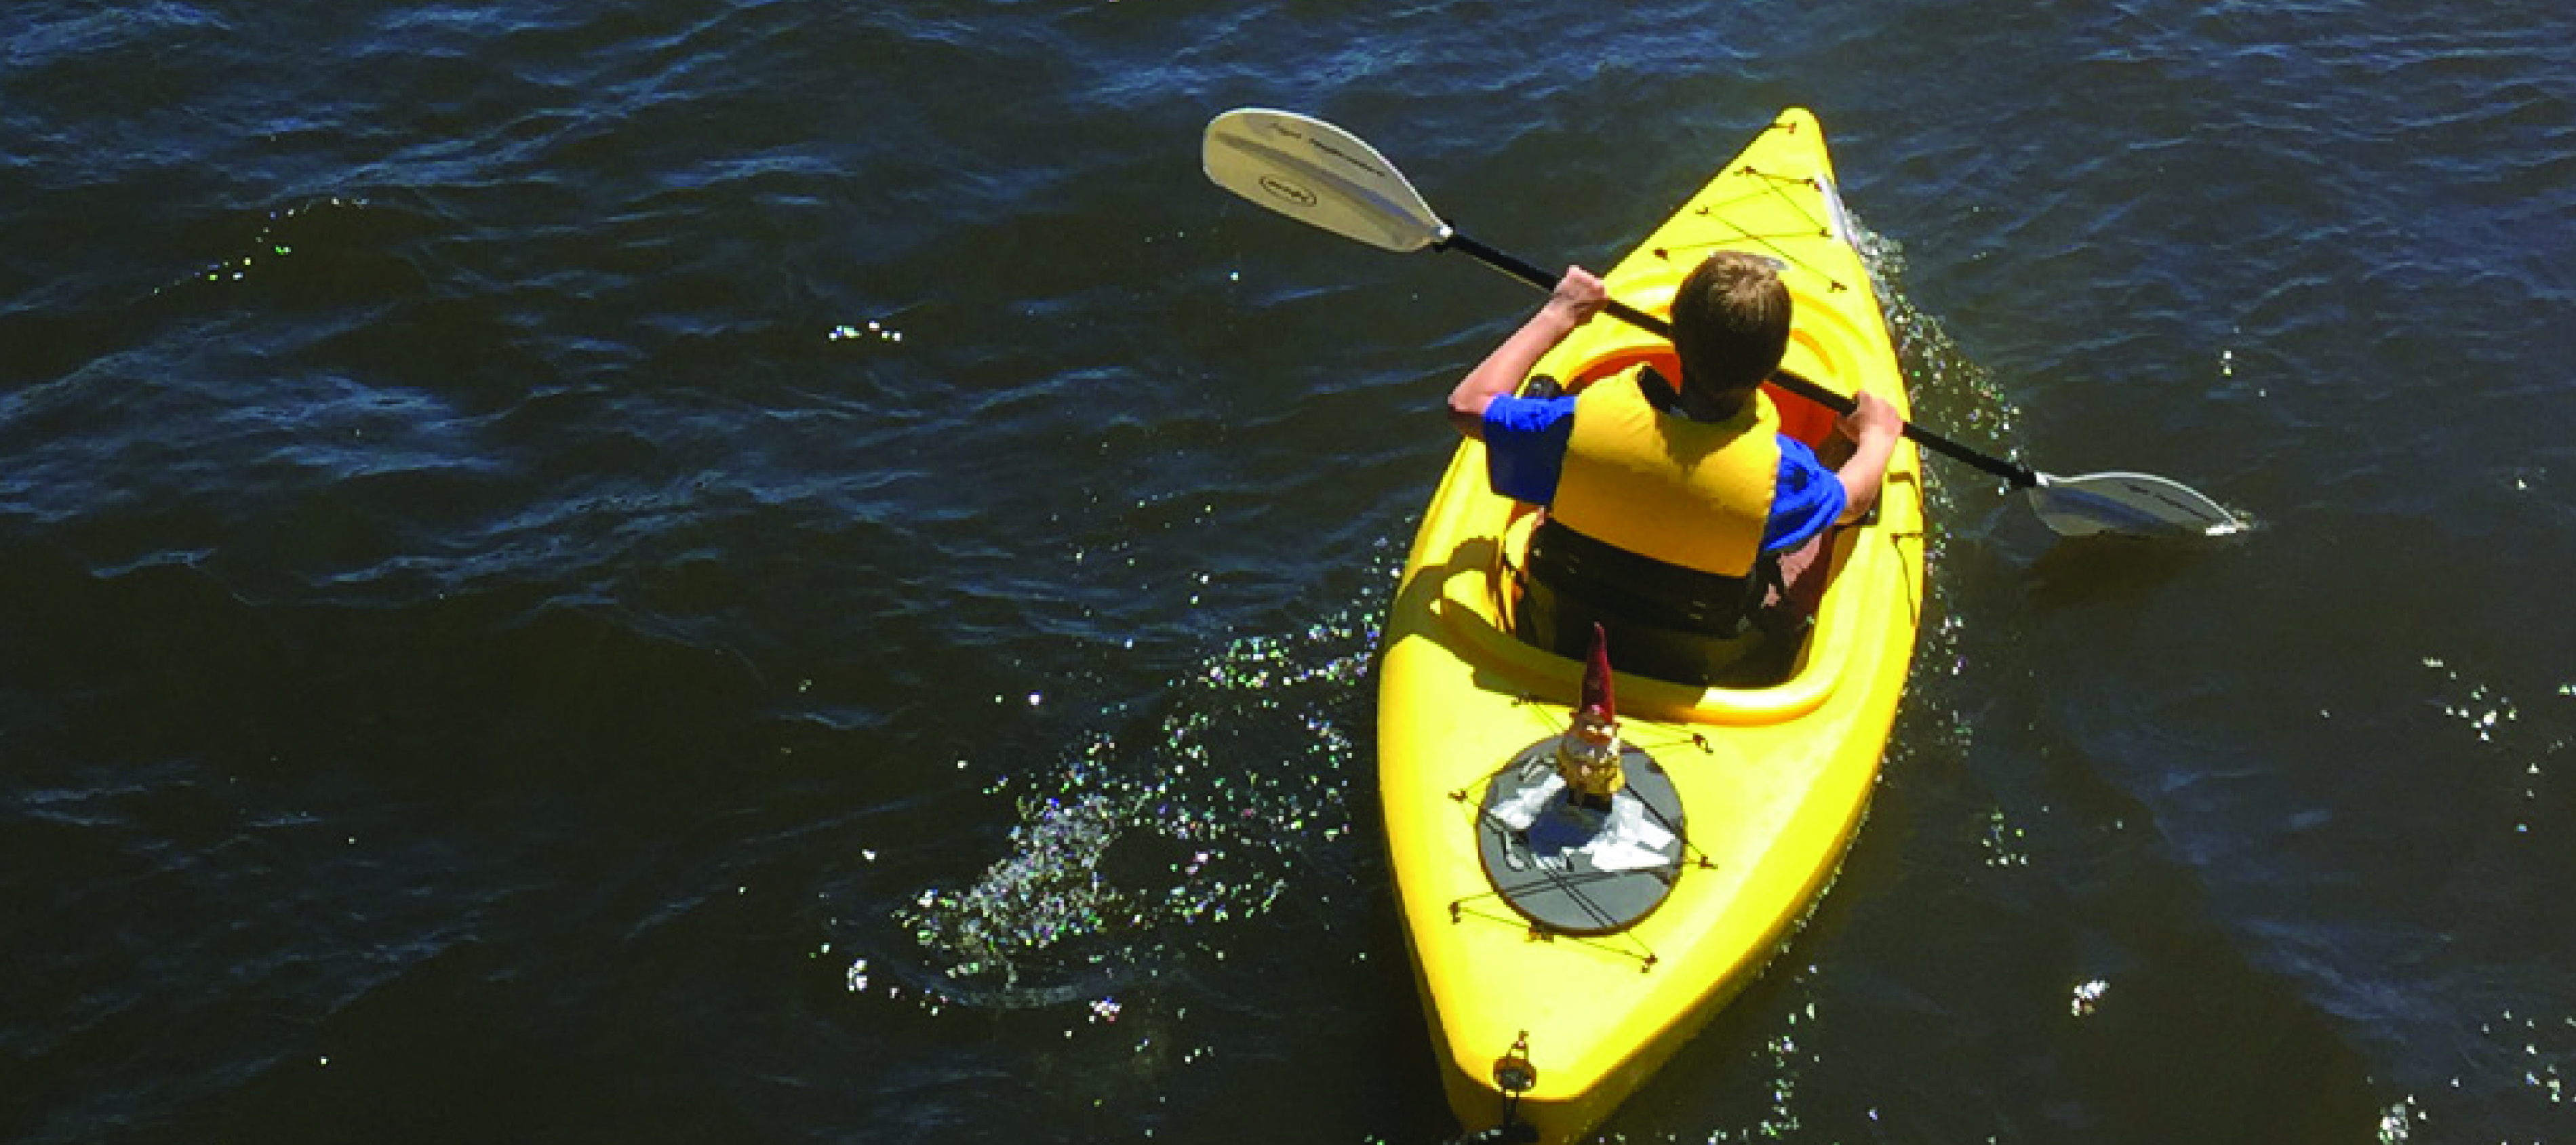 A paddler makes his way down the Deschutes River in a kayak adorned with a smiling garden gnome.